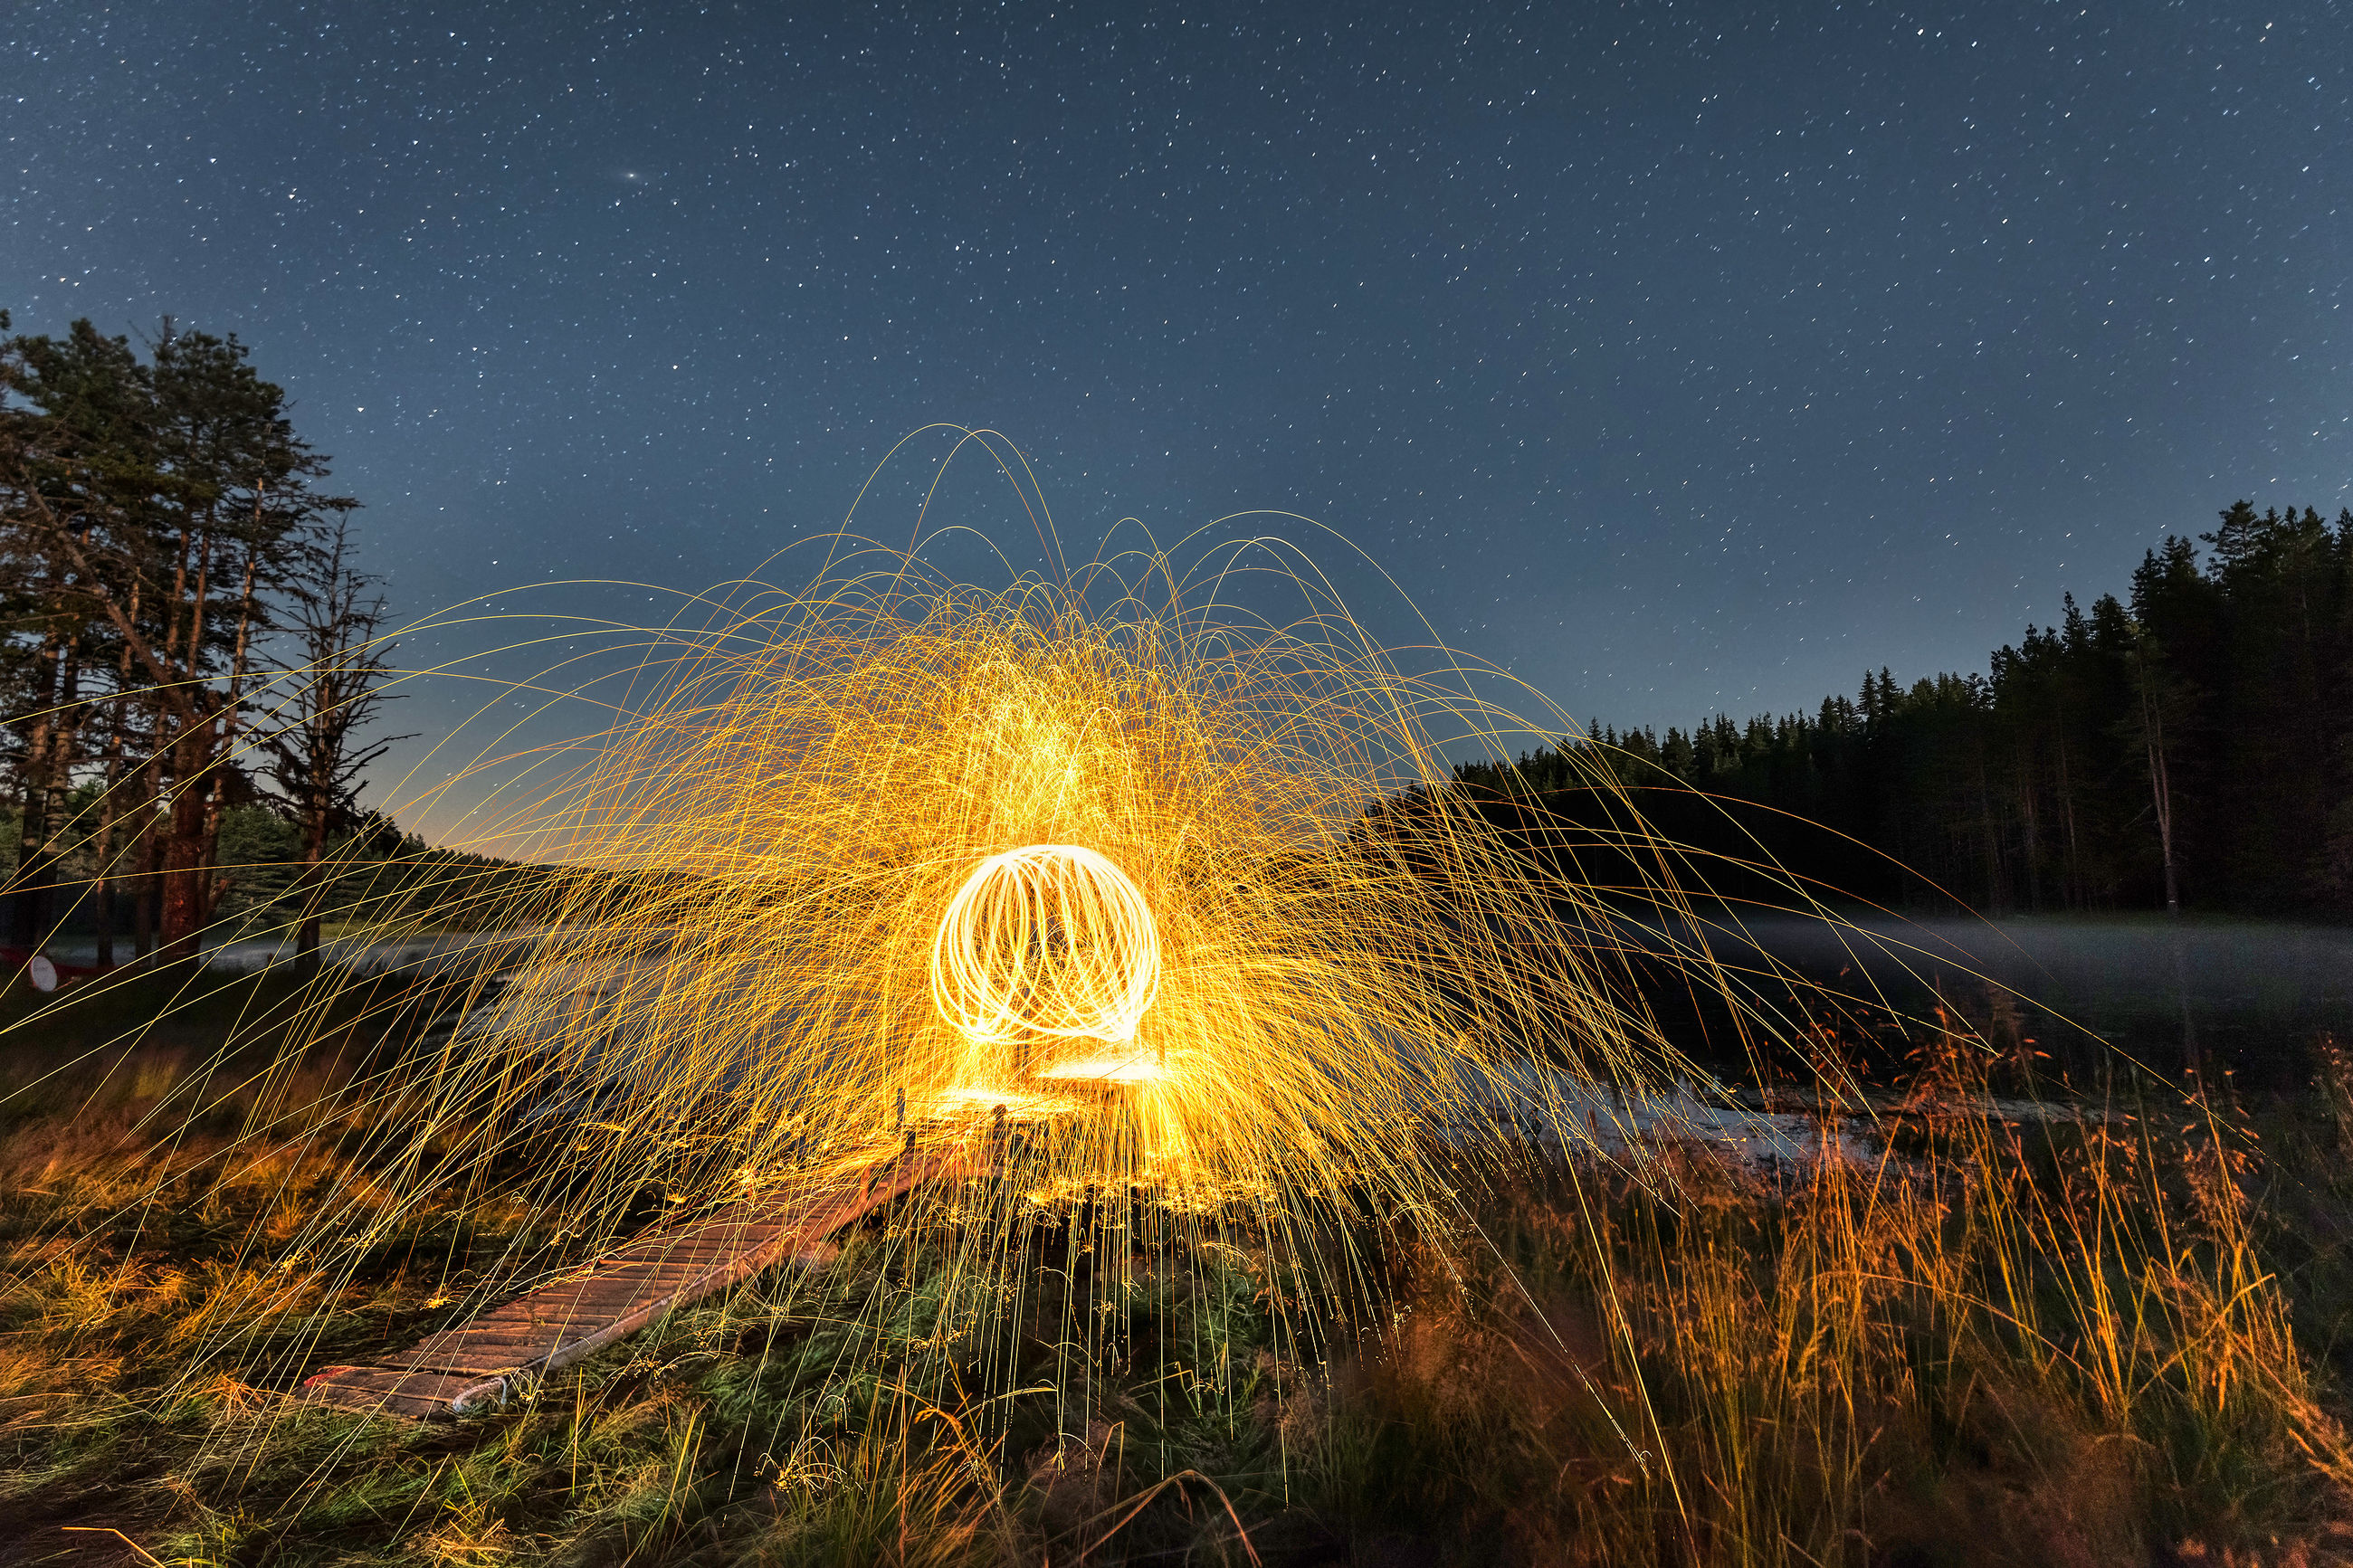 night, long exposure, wire wool, illuminated, sky, spinning, motion, glowing, blurred motion, nature, land, star - space, light painting, light trail, field, circle, space, scenics - nature, sparks, geometric shape, outdoors, no people, astronomy